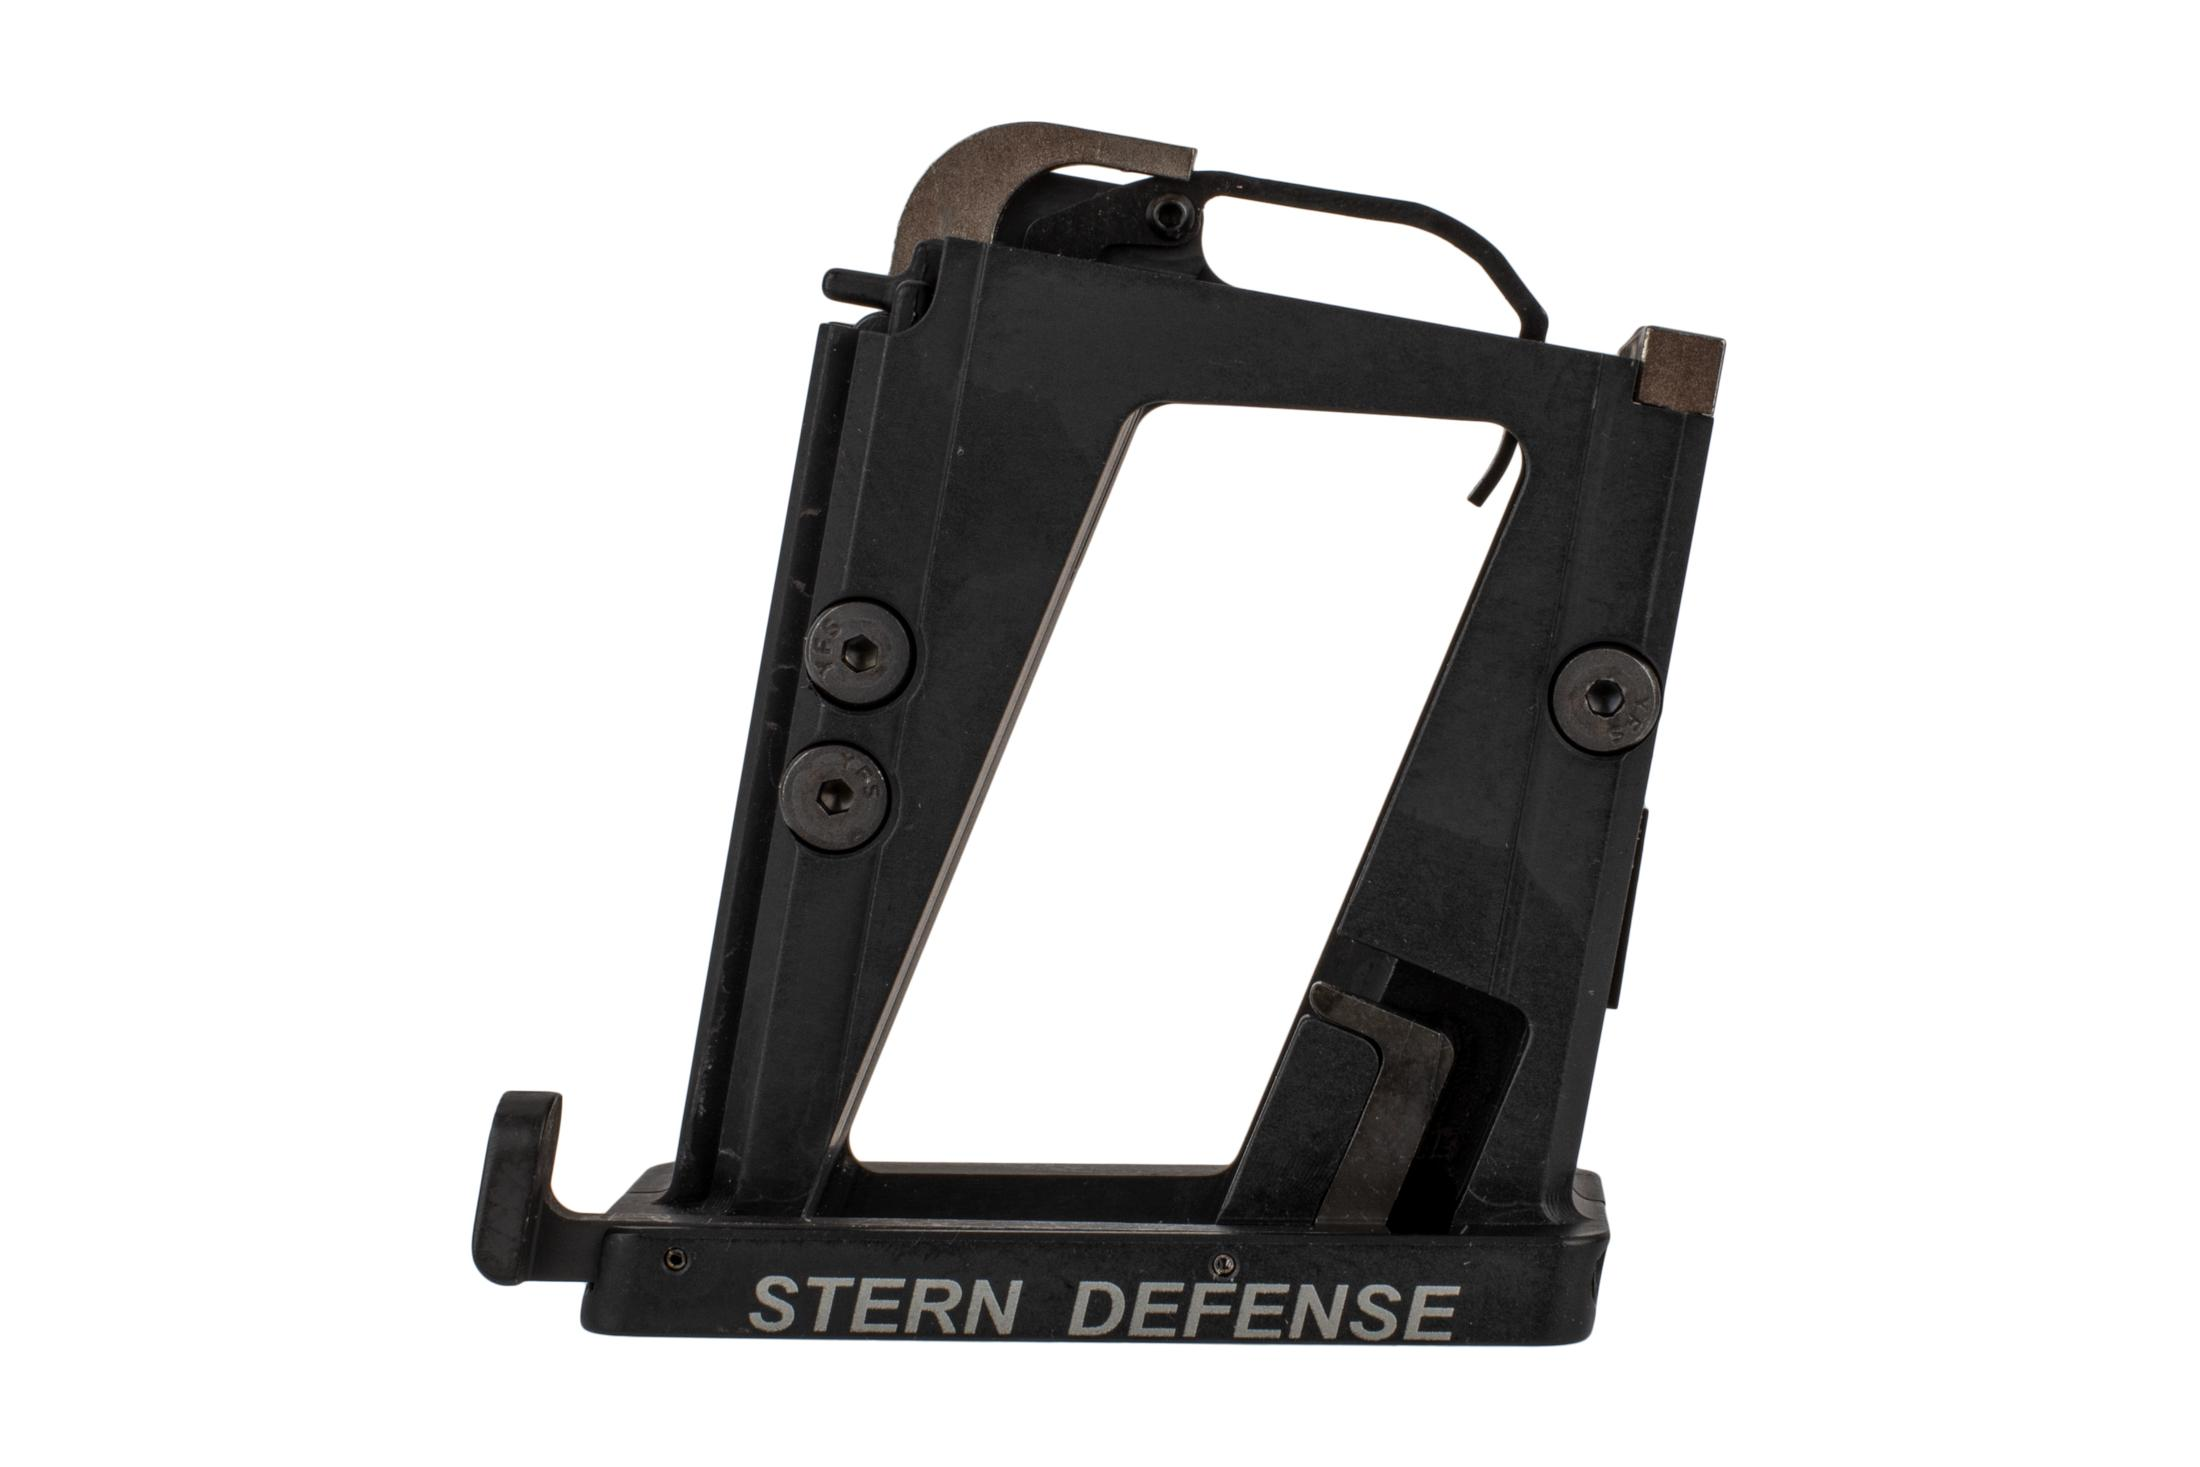 The Stern Defense Beretta 92 magazine adapter is compatible with mil-spec ar15 lower receivers